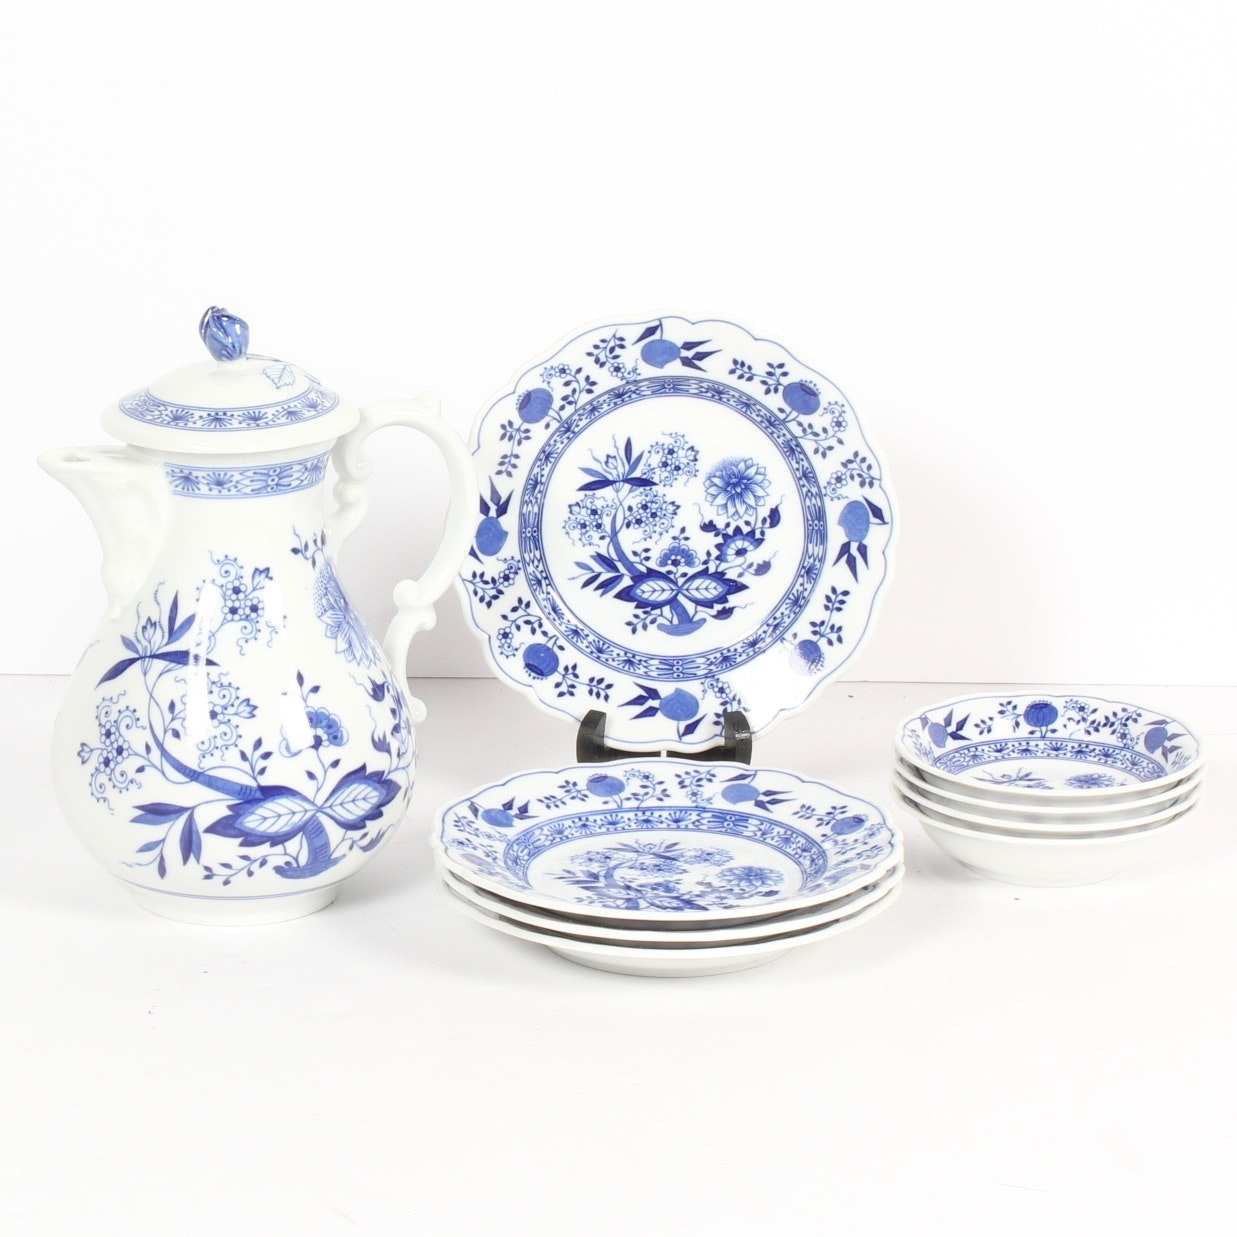 German Blue and White Porcelain